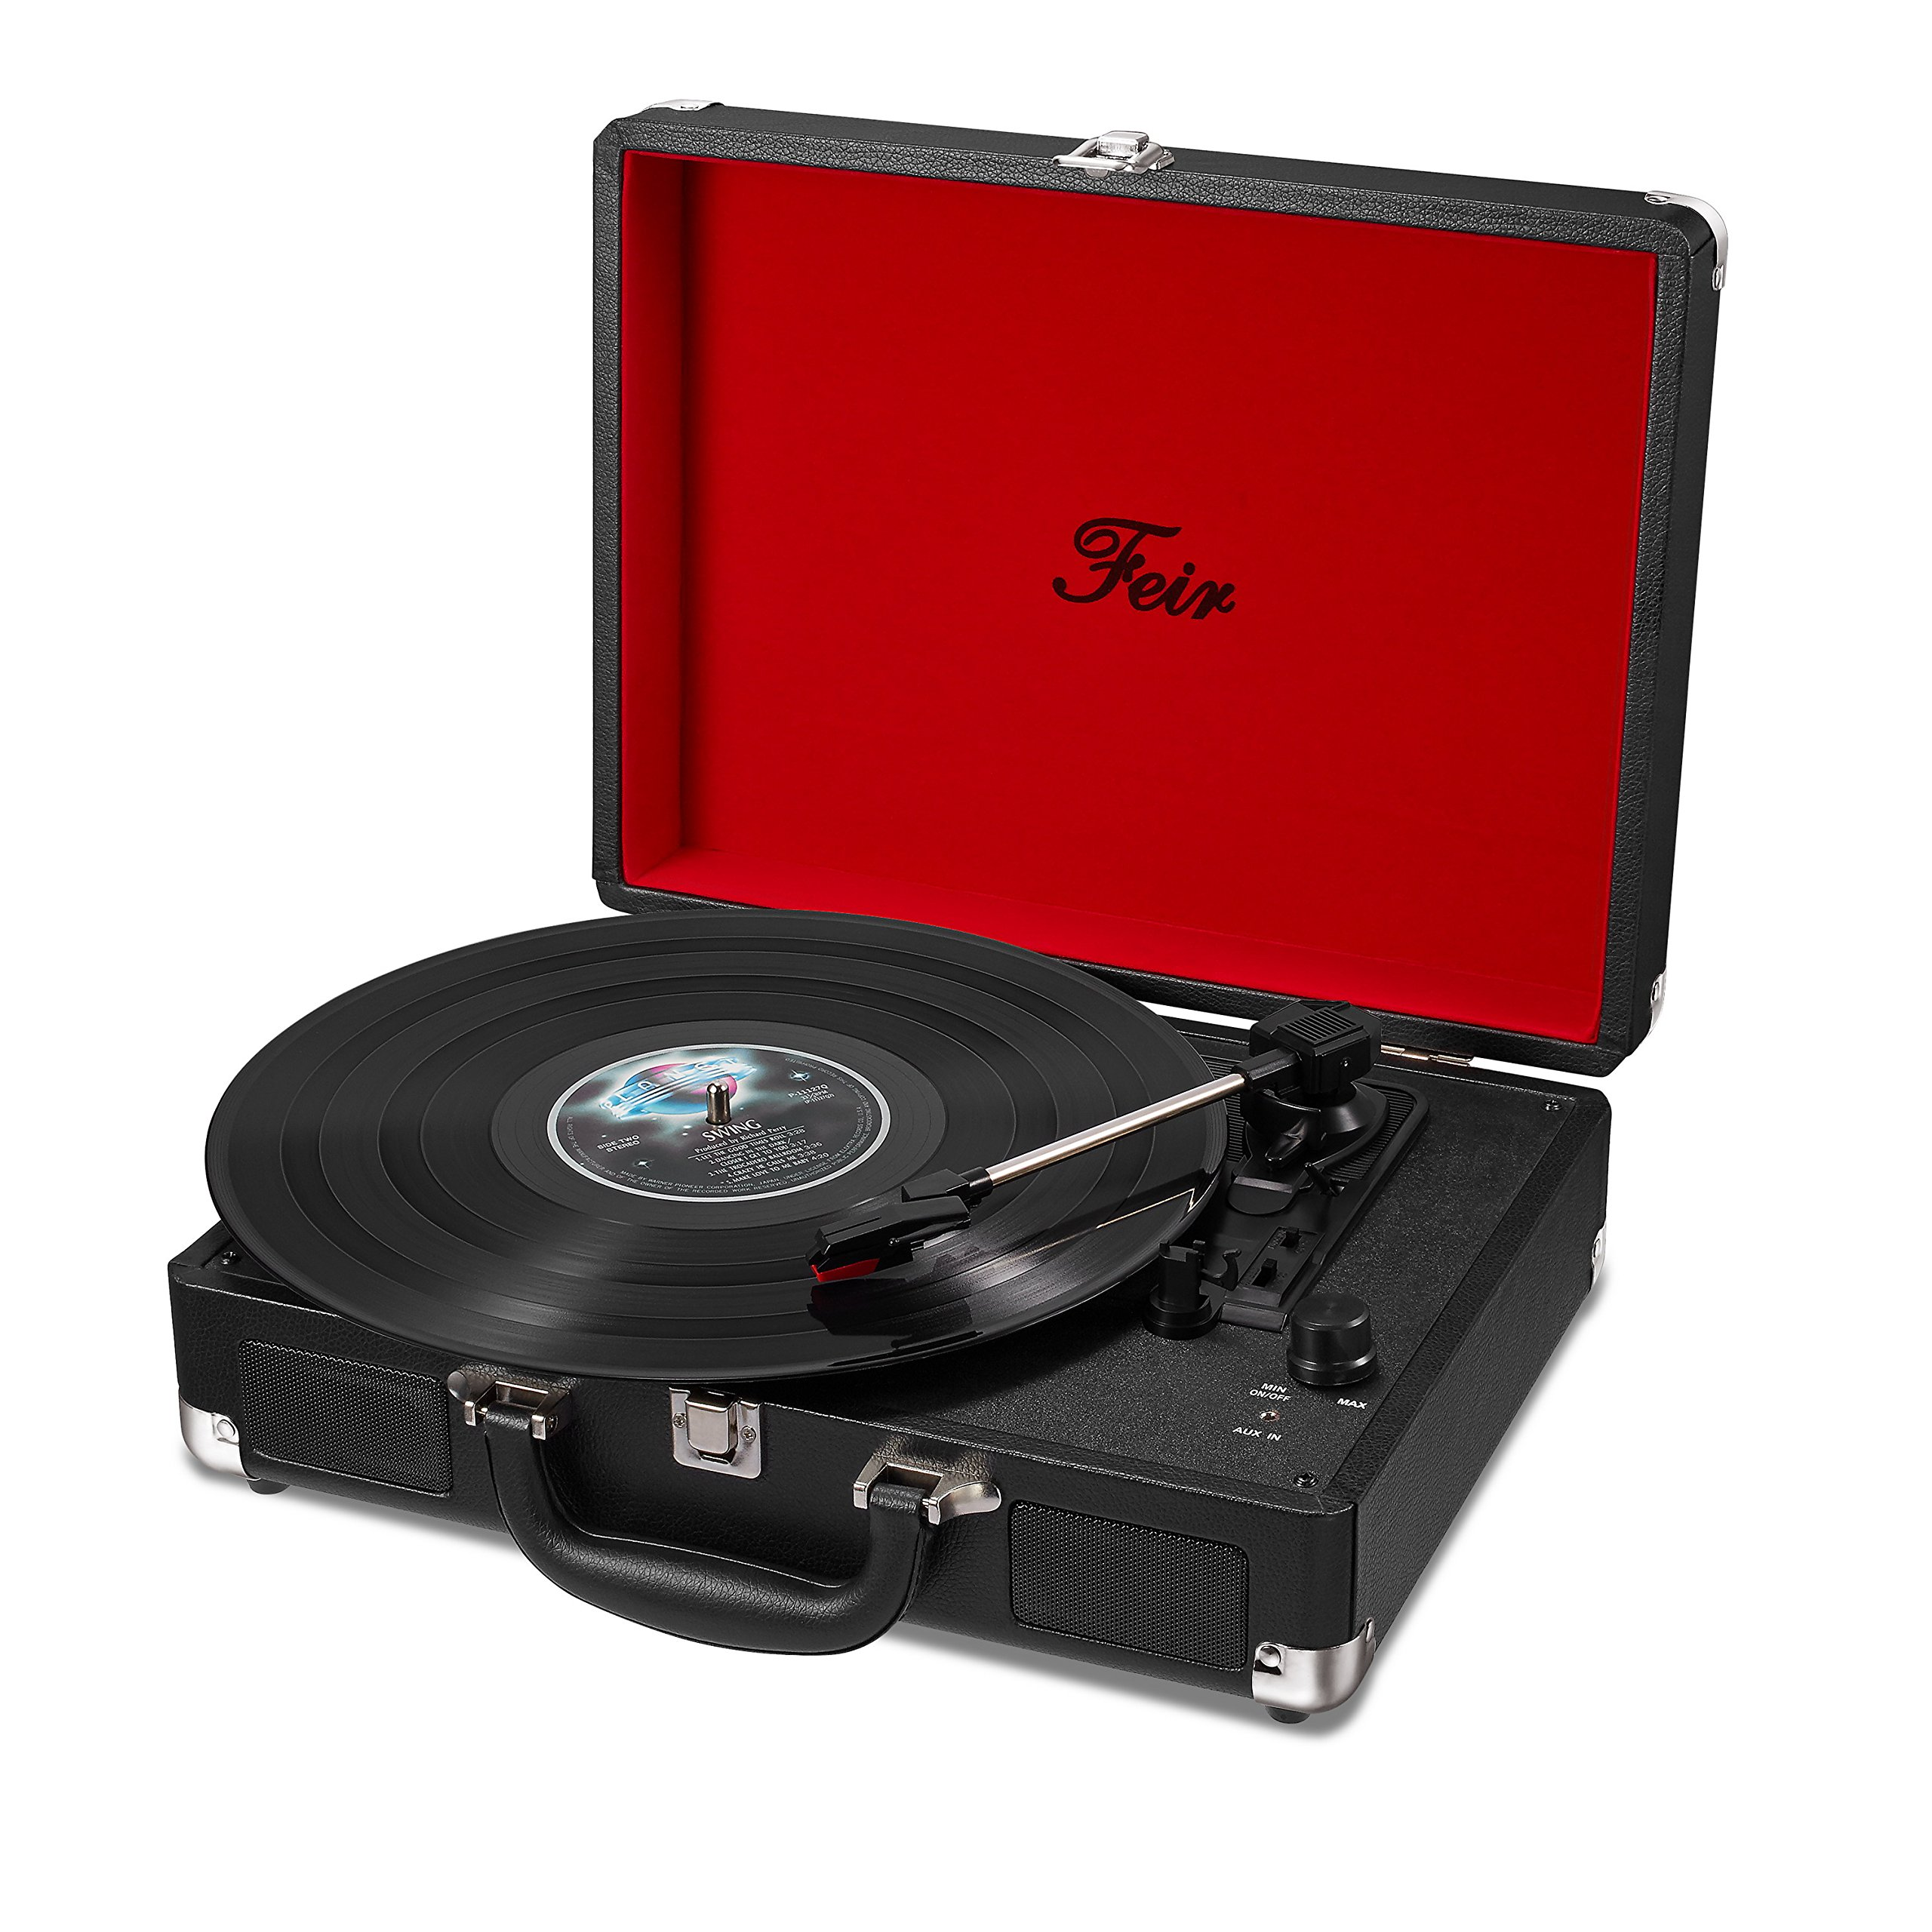 Vinyl Stereo Black Record Player 3 Speed Portable Turntable Suitcase Built in 2 Speakers RCA Line Out AUX Headphone Jack PC Recorder